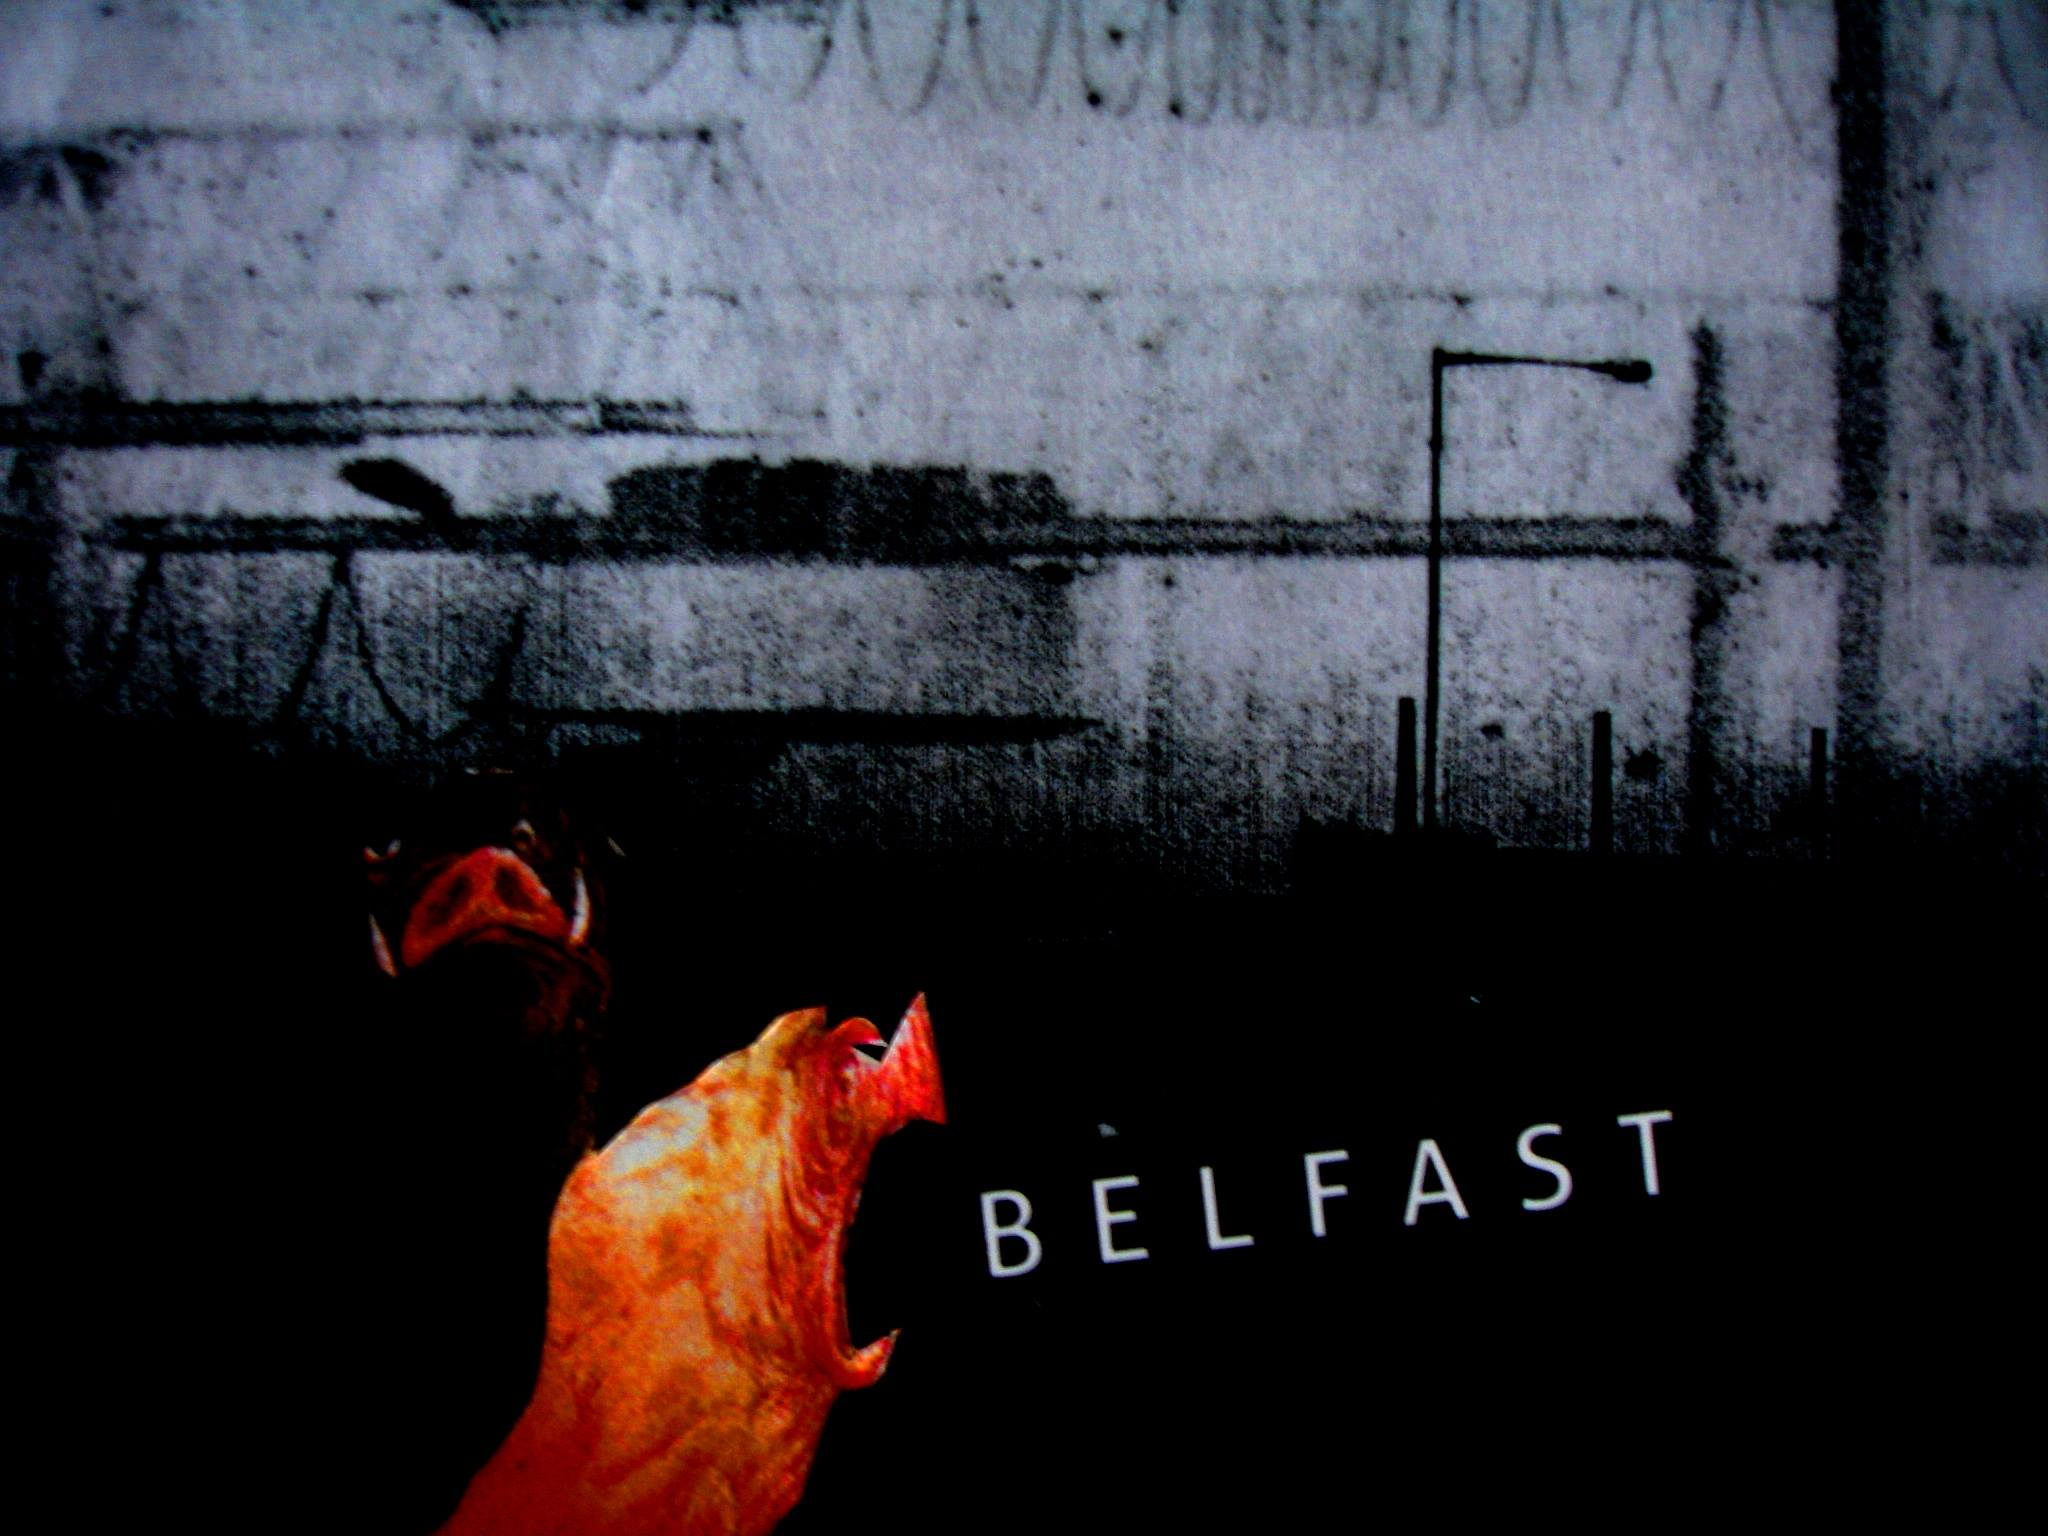 A collage of a cityscape of Belfast